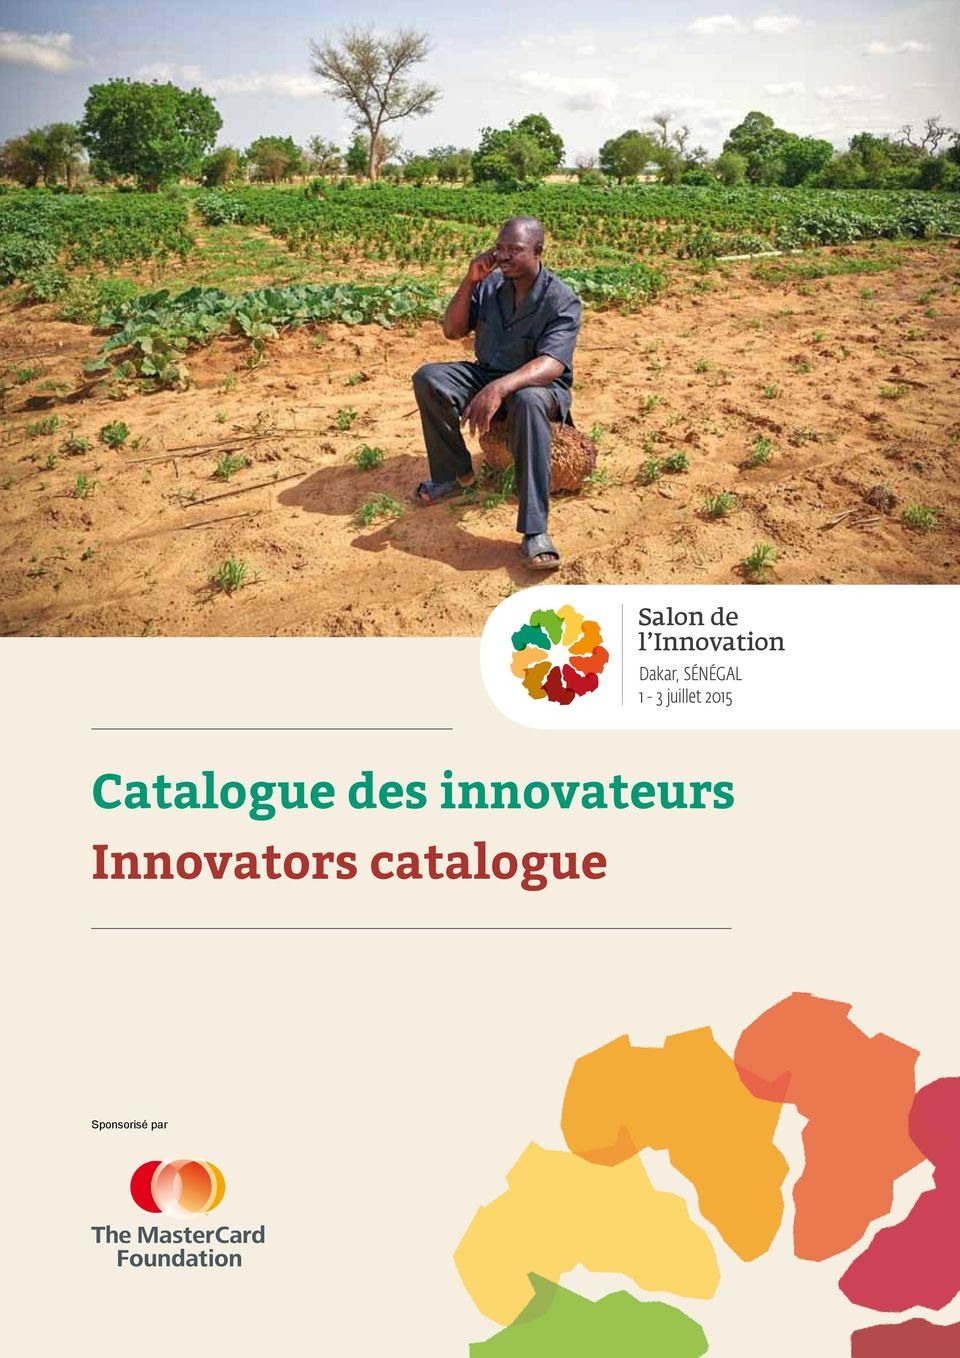 Catalogue des innovateurs